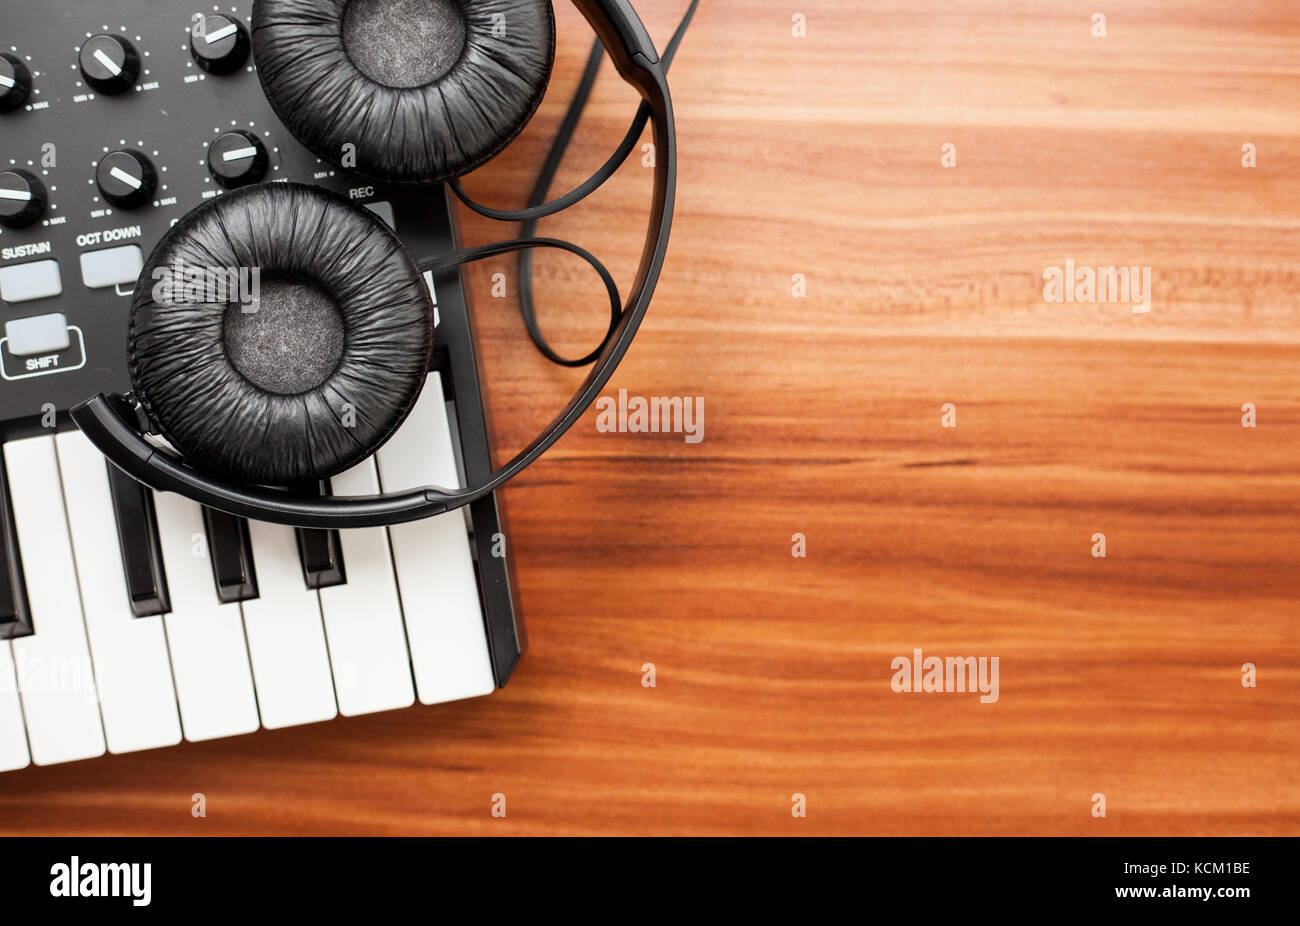 closeup photo of a mini keyboard with a pair of headphones - Stock Image